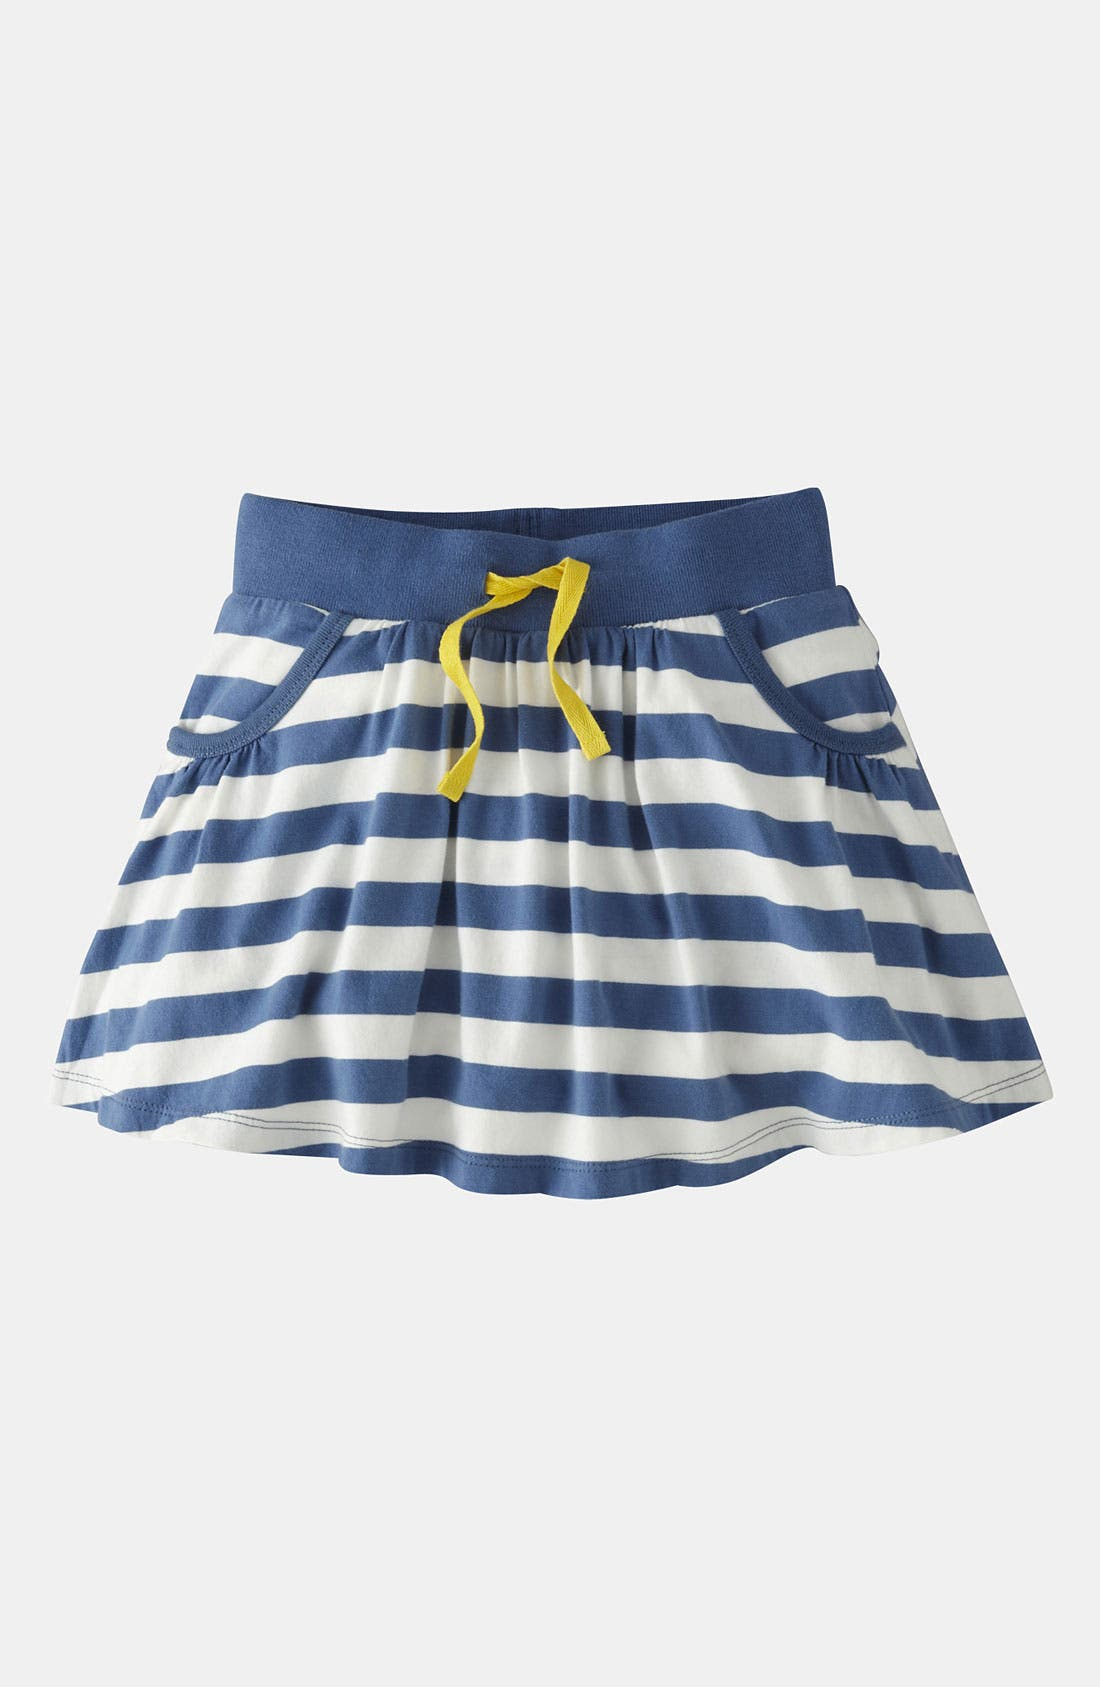 Alternate Image 1 Selected - Mini Boden Jersey Scooter Skirt (Little Girls & Big Girls)